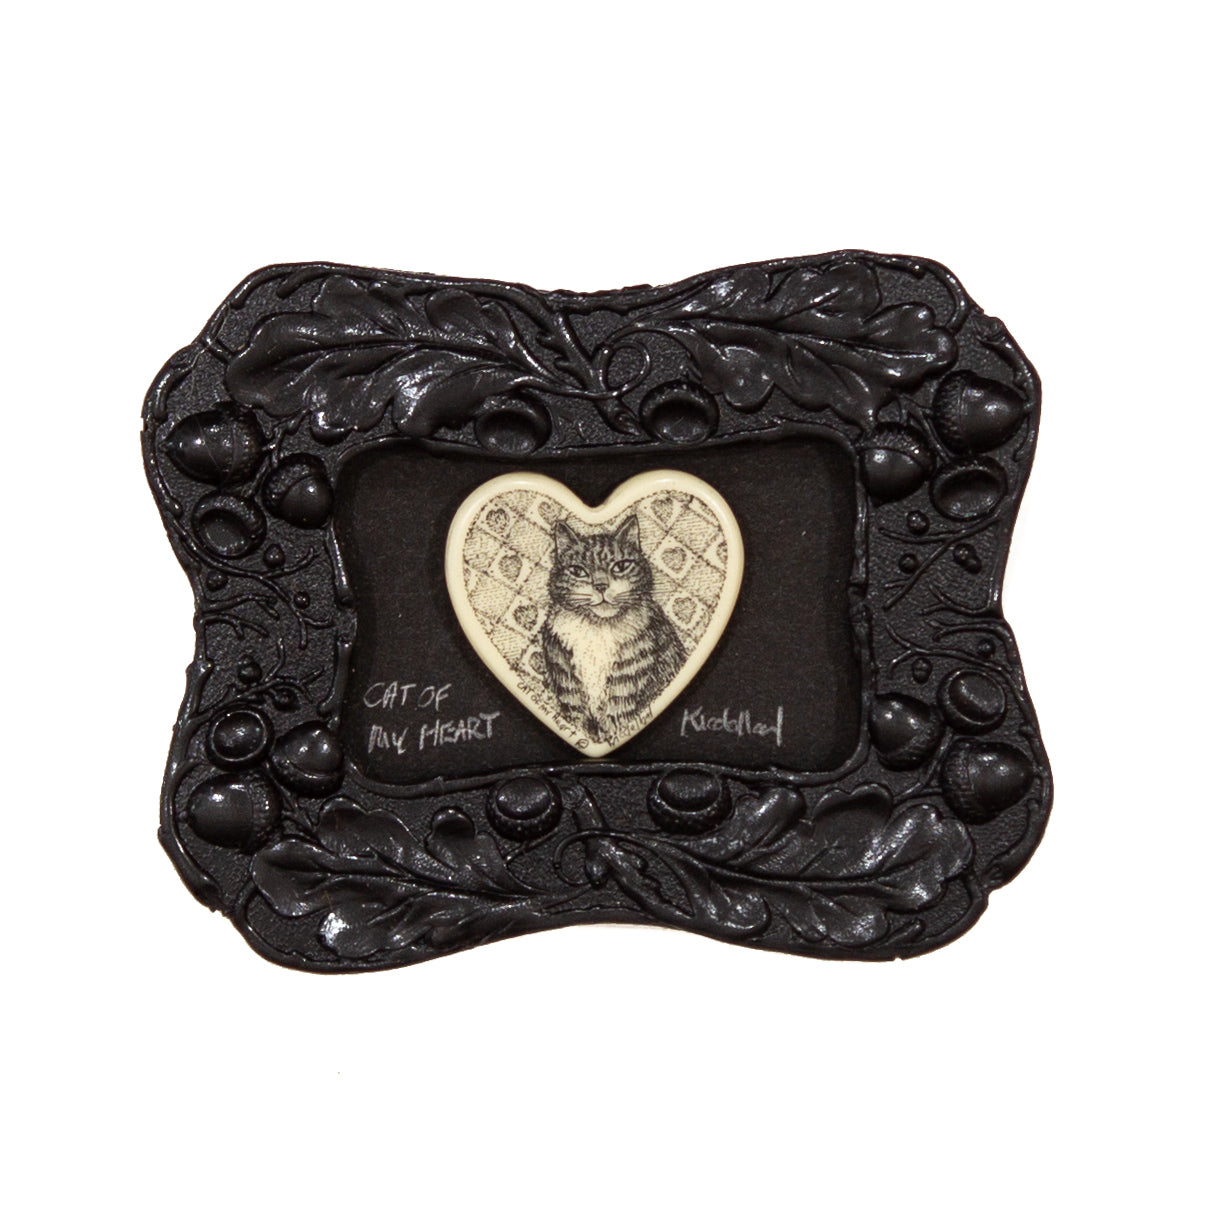 """Cat of my Heart"" Mini Chip Carved Frame"